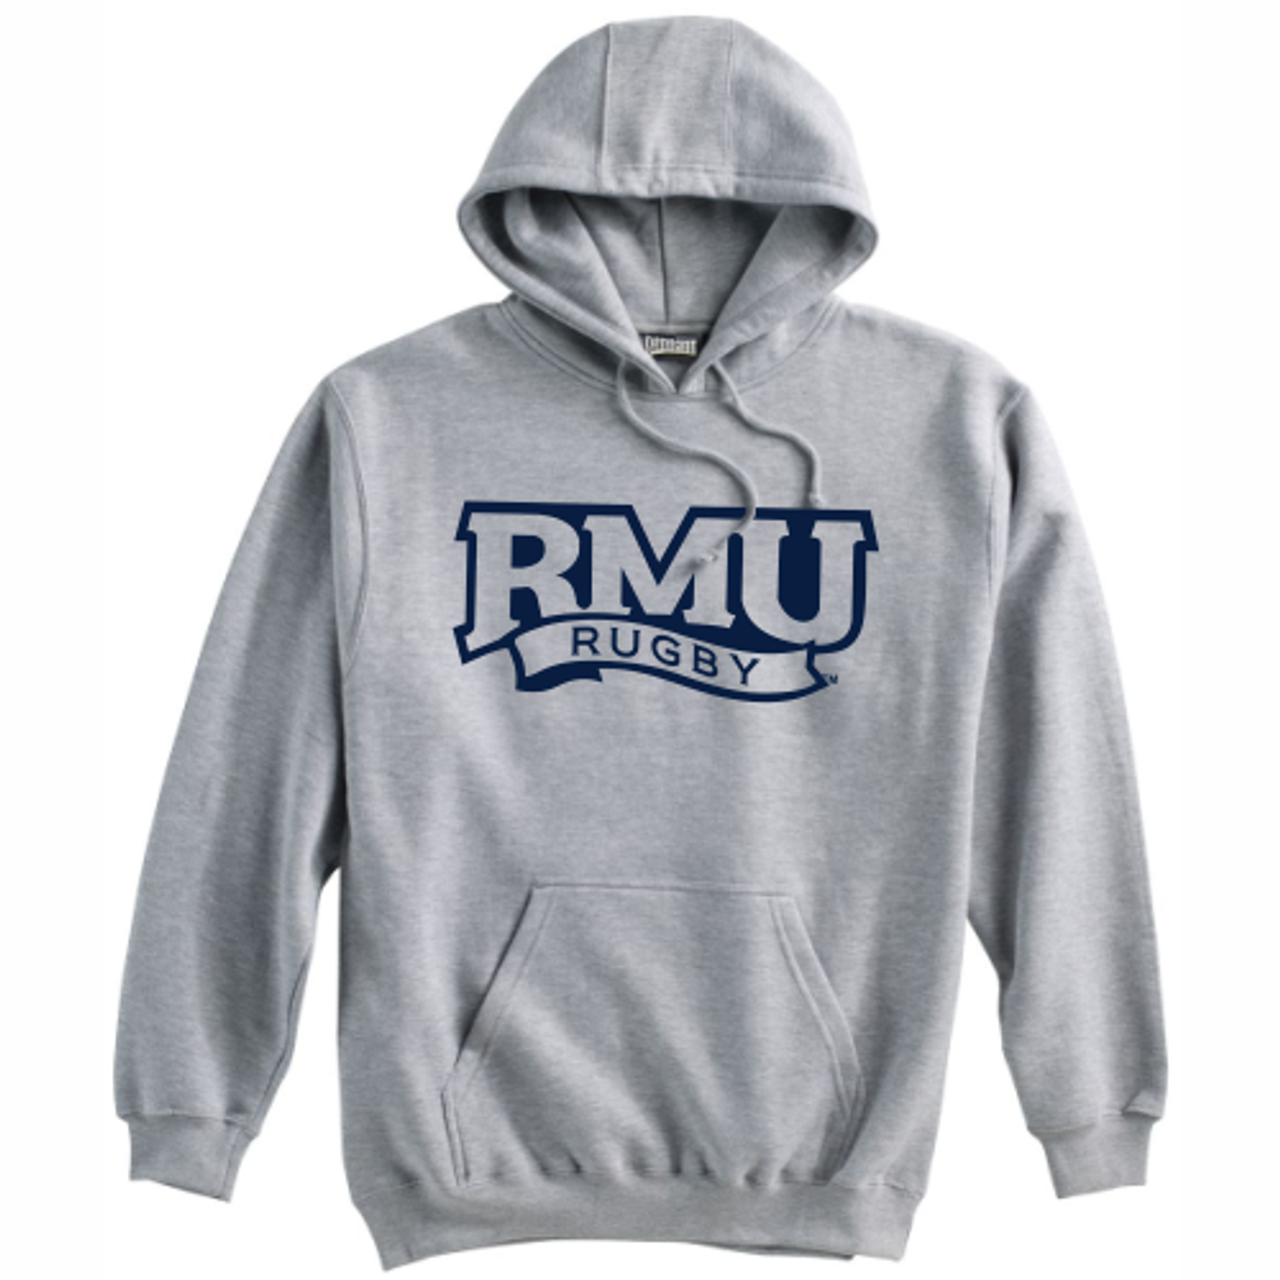 Robert Morris Fleece Hoodie, Gray